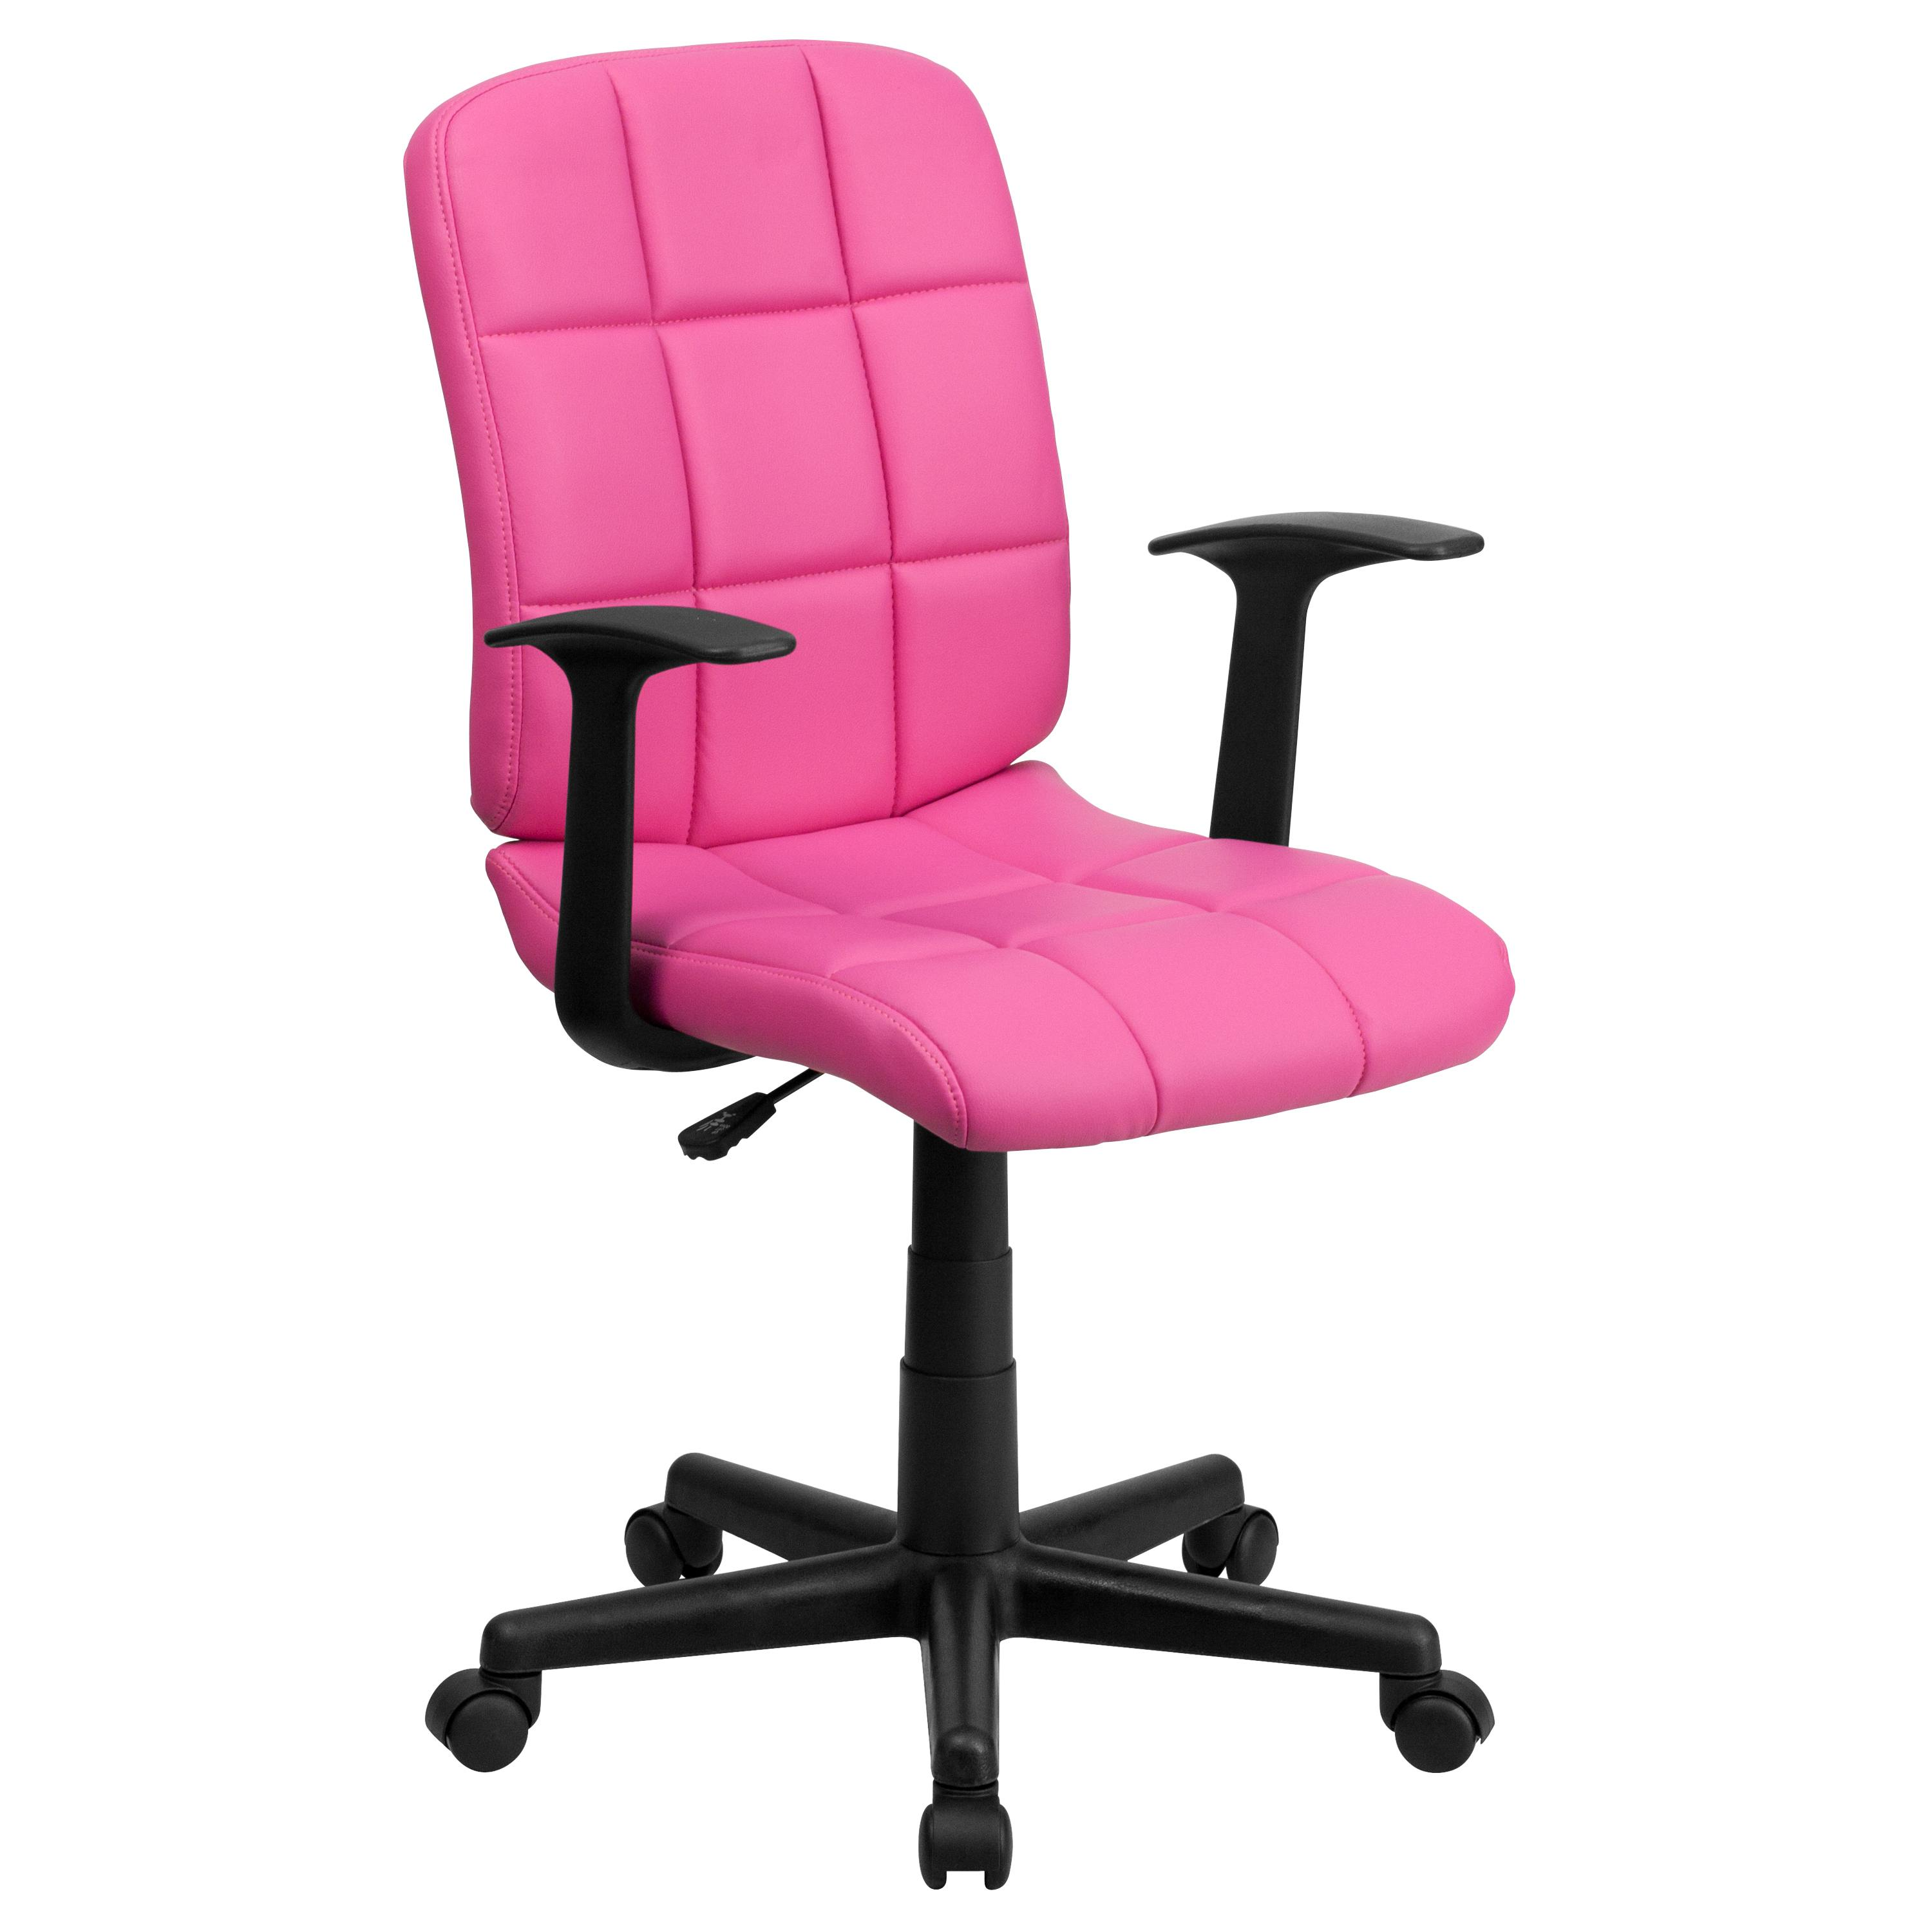 Flash Furniture  Mid-back Swivel Computer Chair Pink Vinyl Upholstery